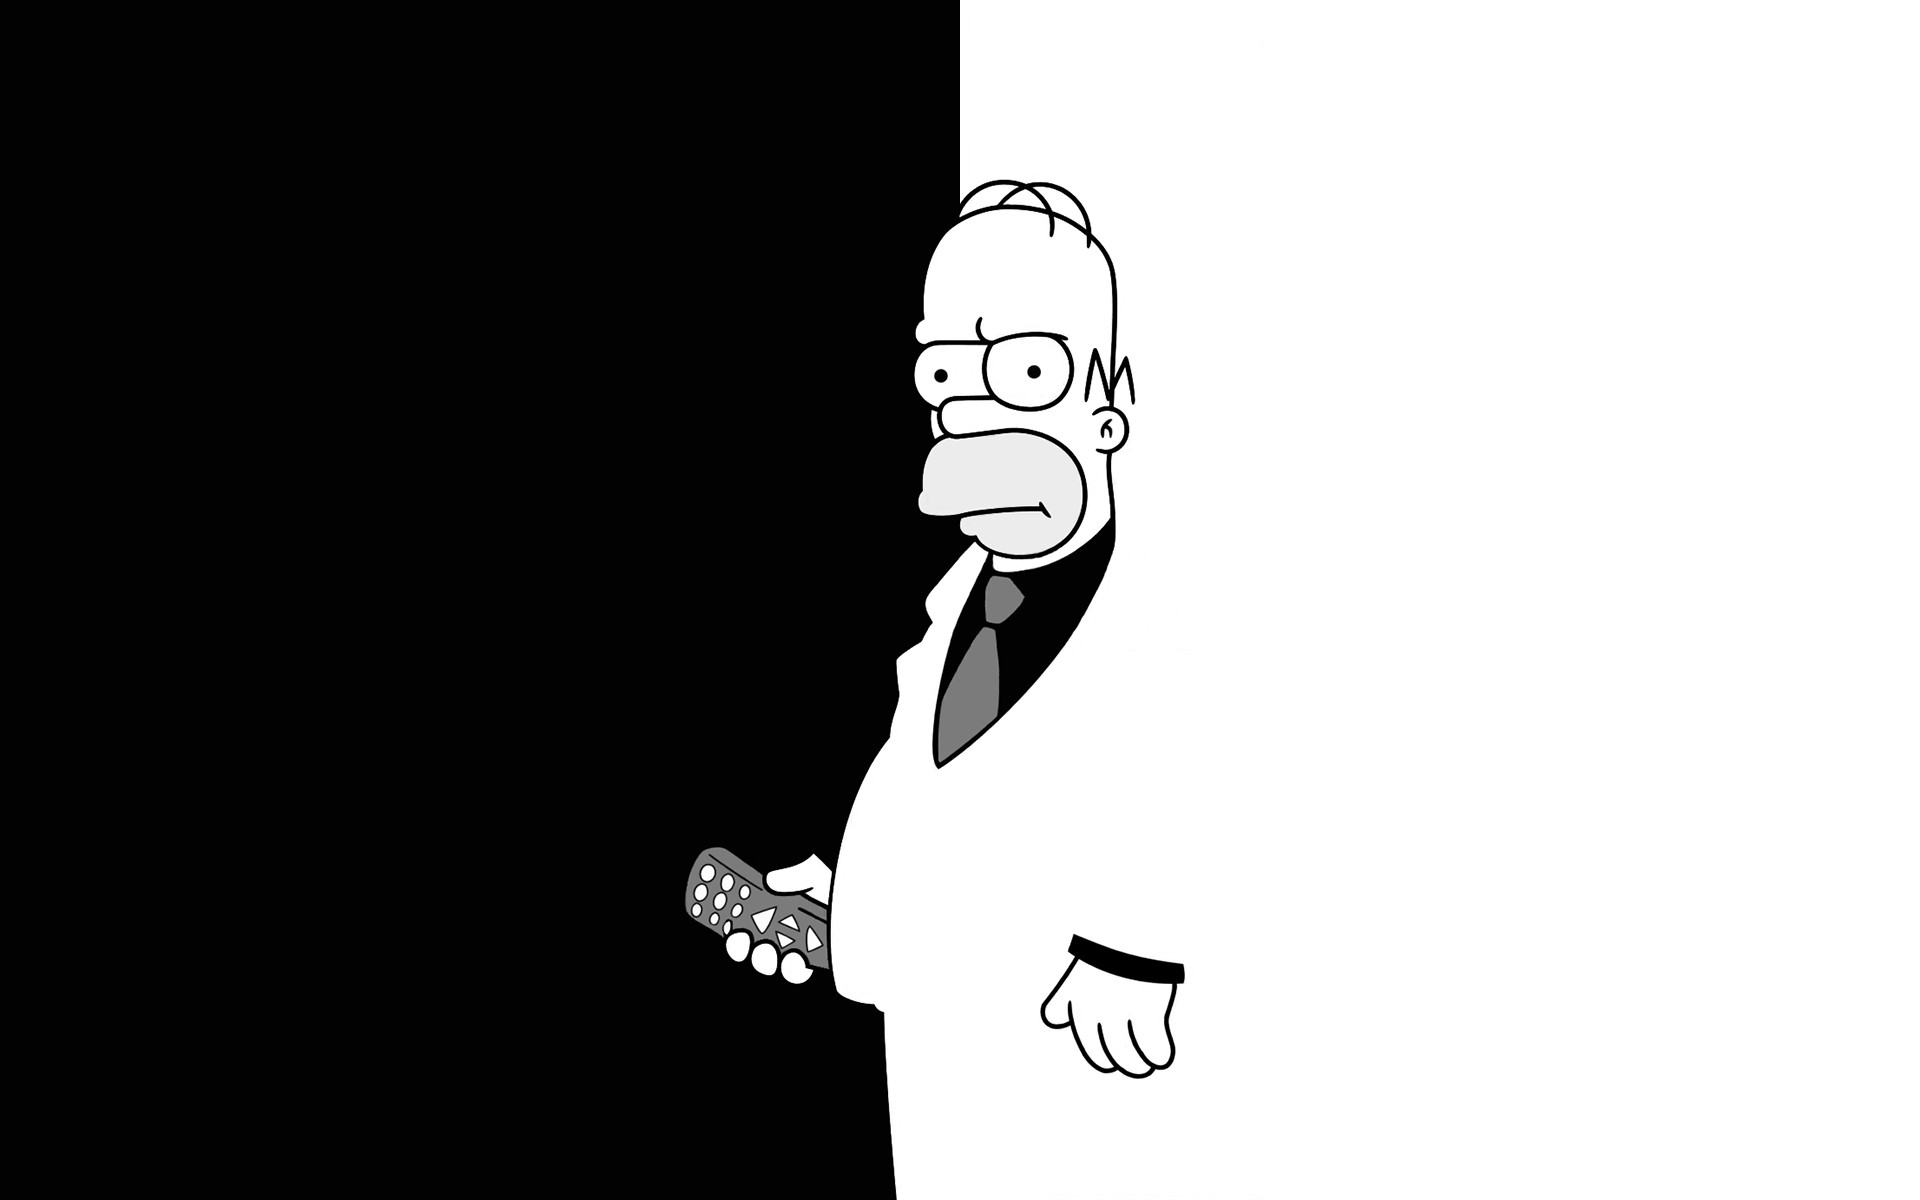 Free Photos Simpsons HD Wallpapers.